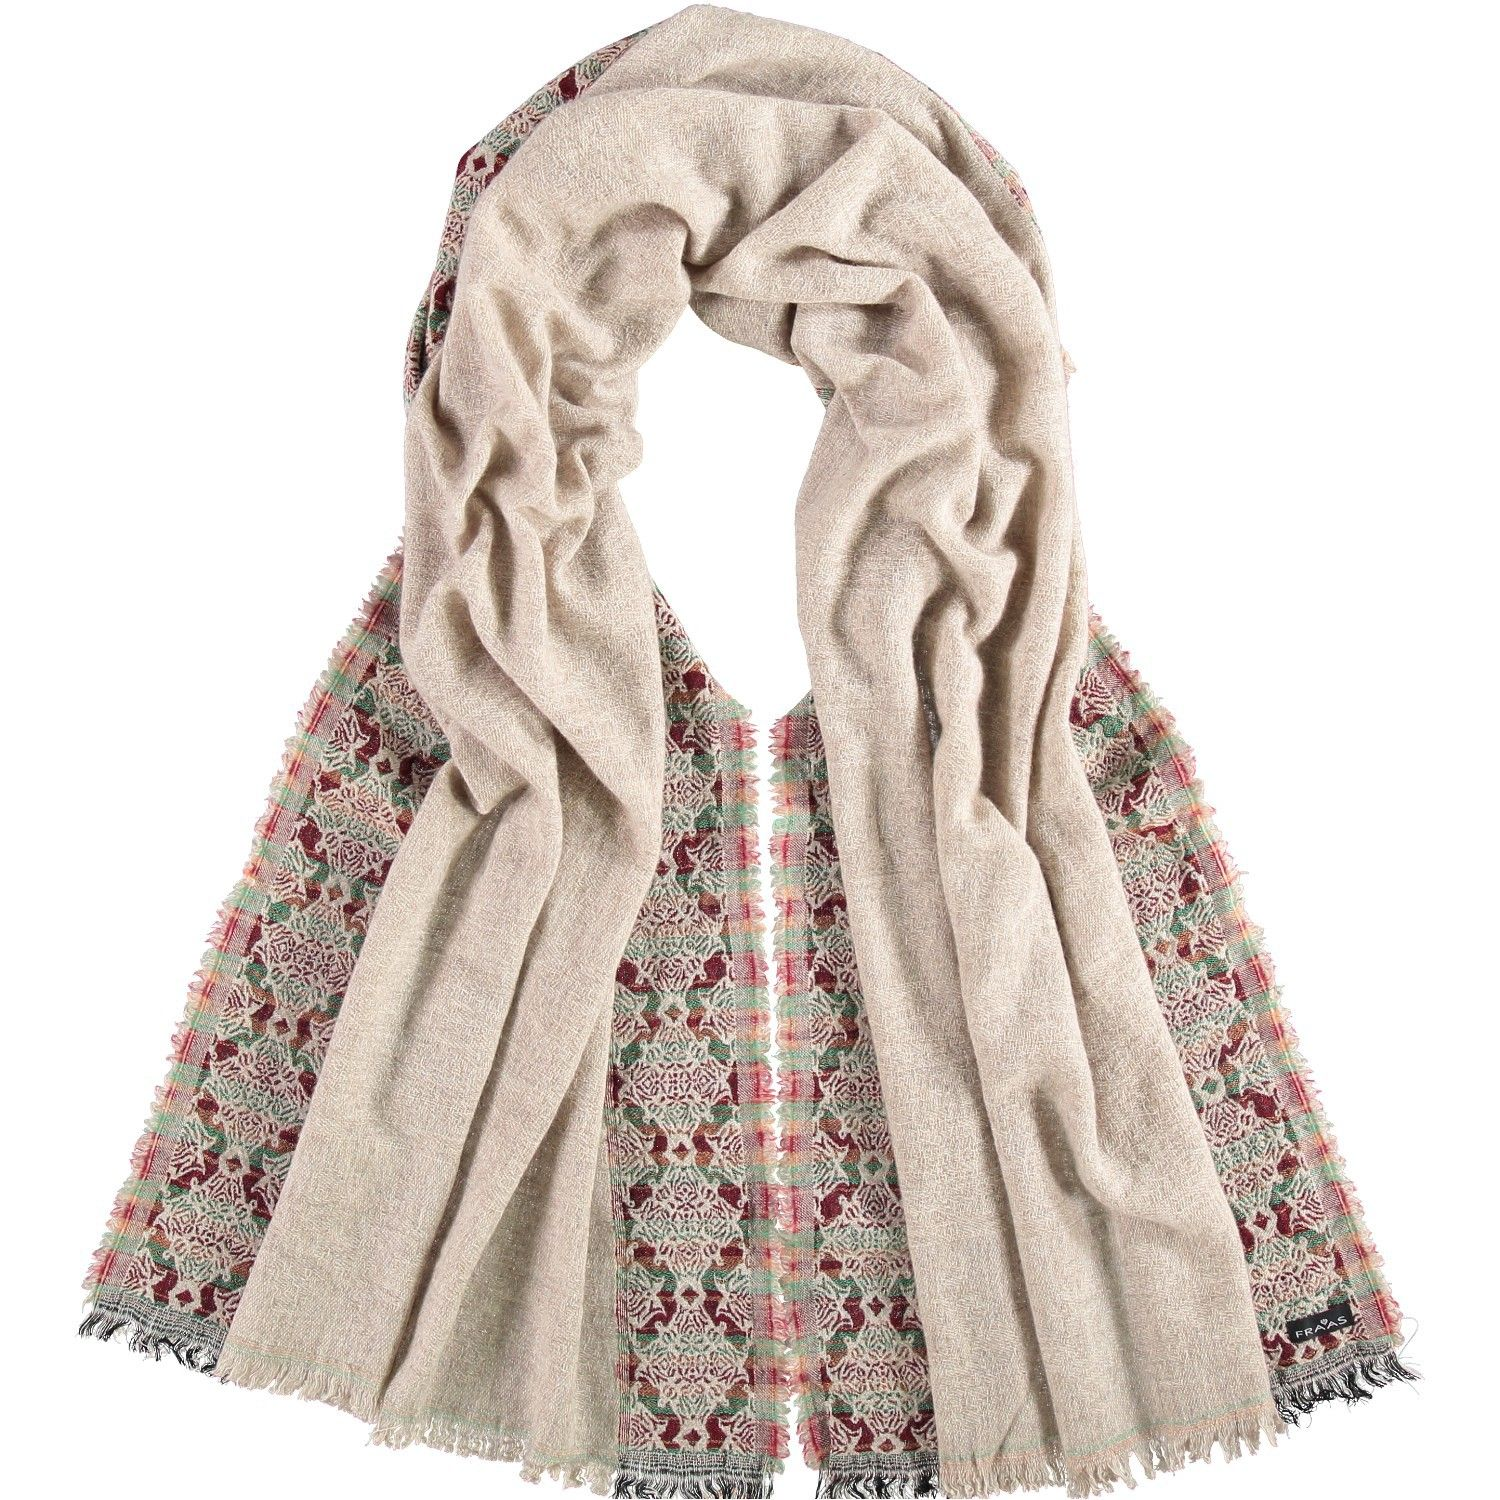 Ein absolutes Highlight - FRAAS - THE SCARF COMPANY